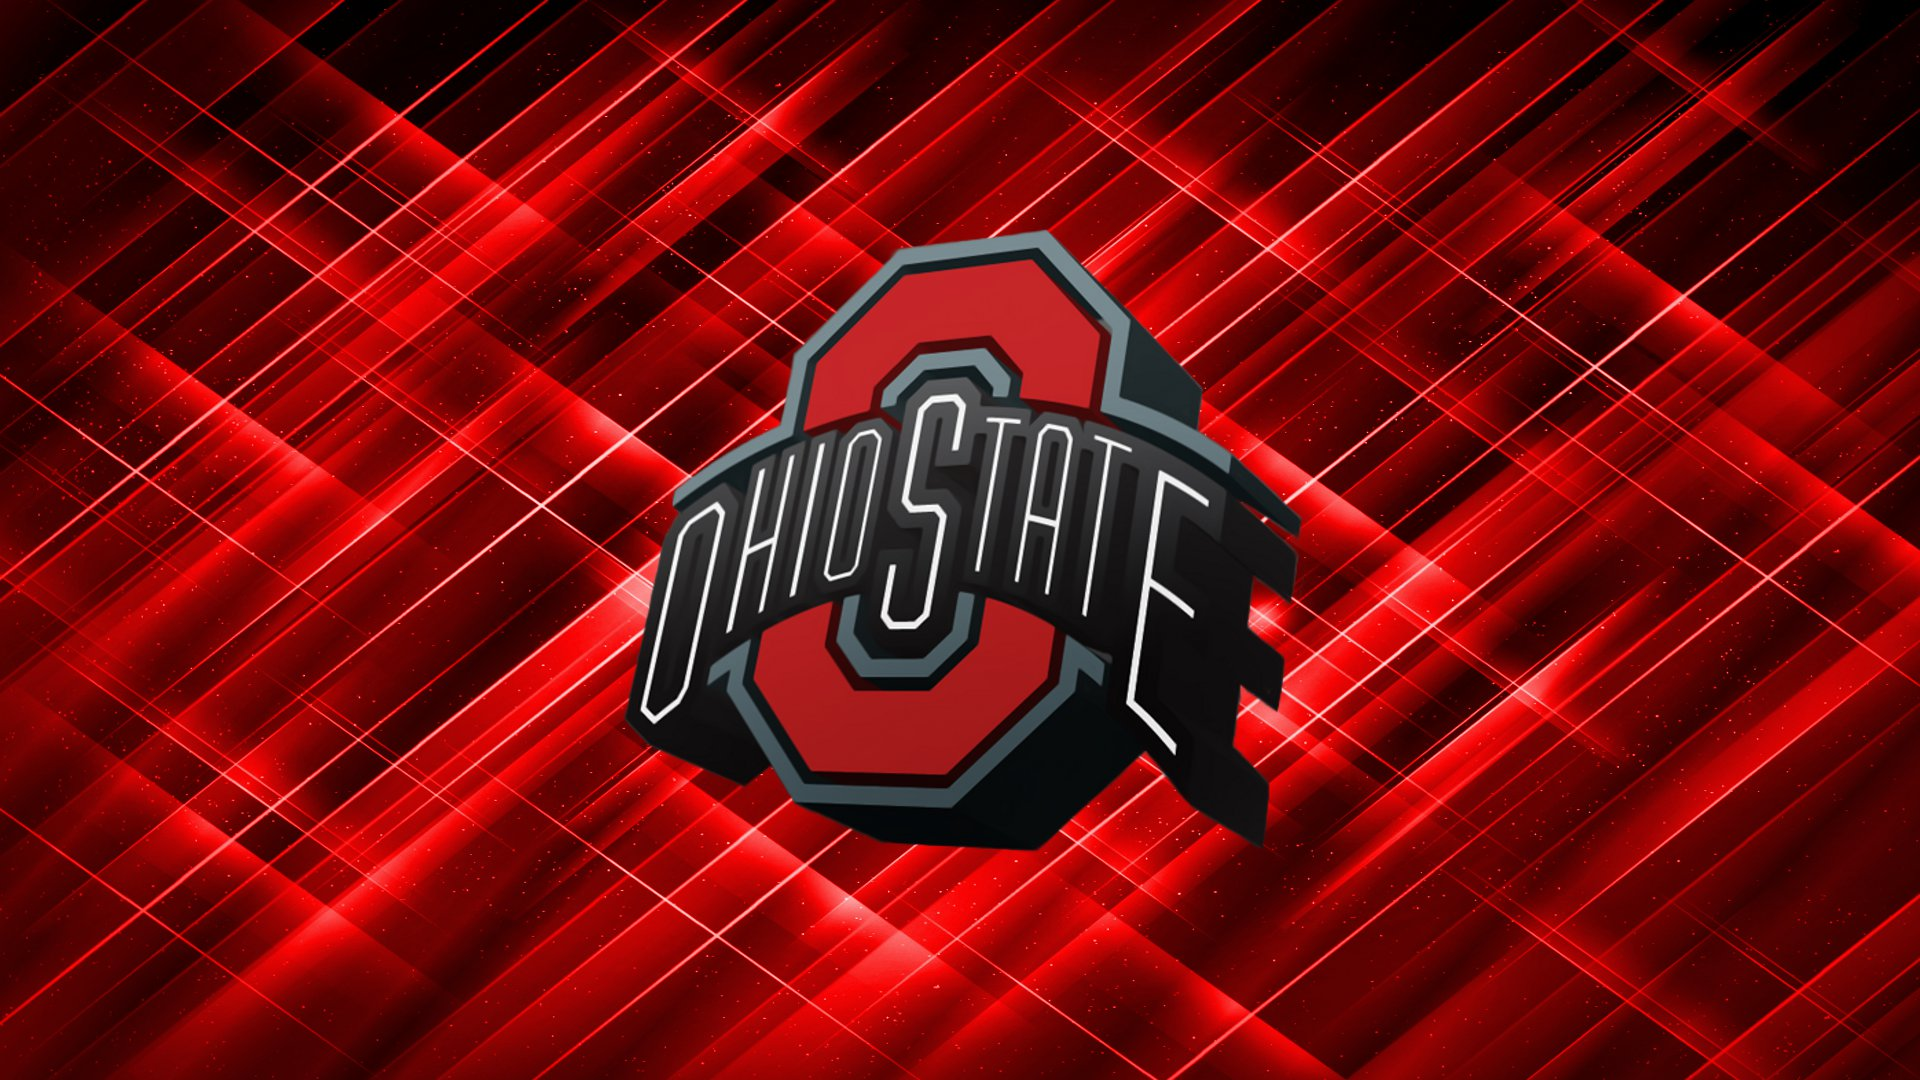 OHIO STATE BUCKEYES college football 16 wallpaper 1920x1080 1920x1080